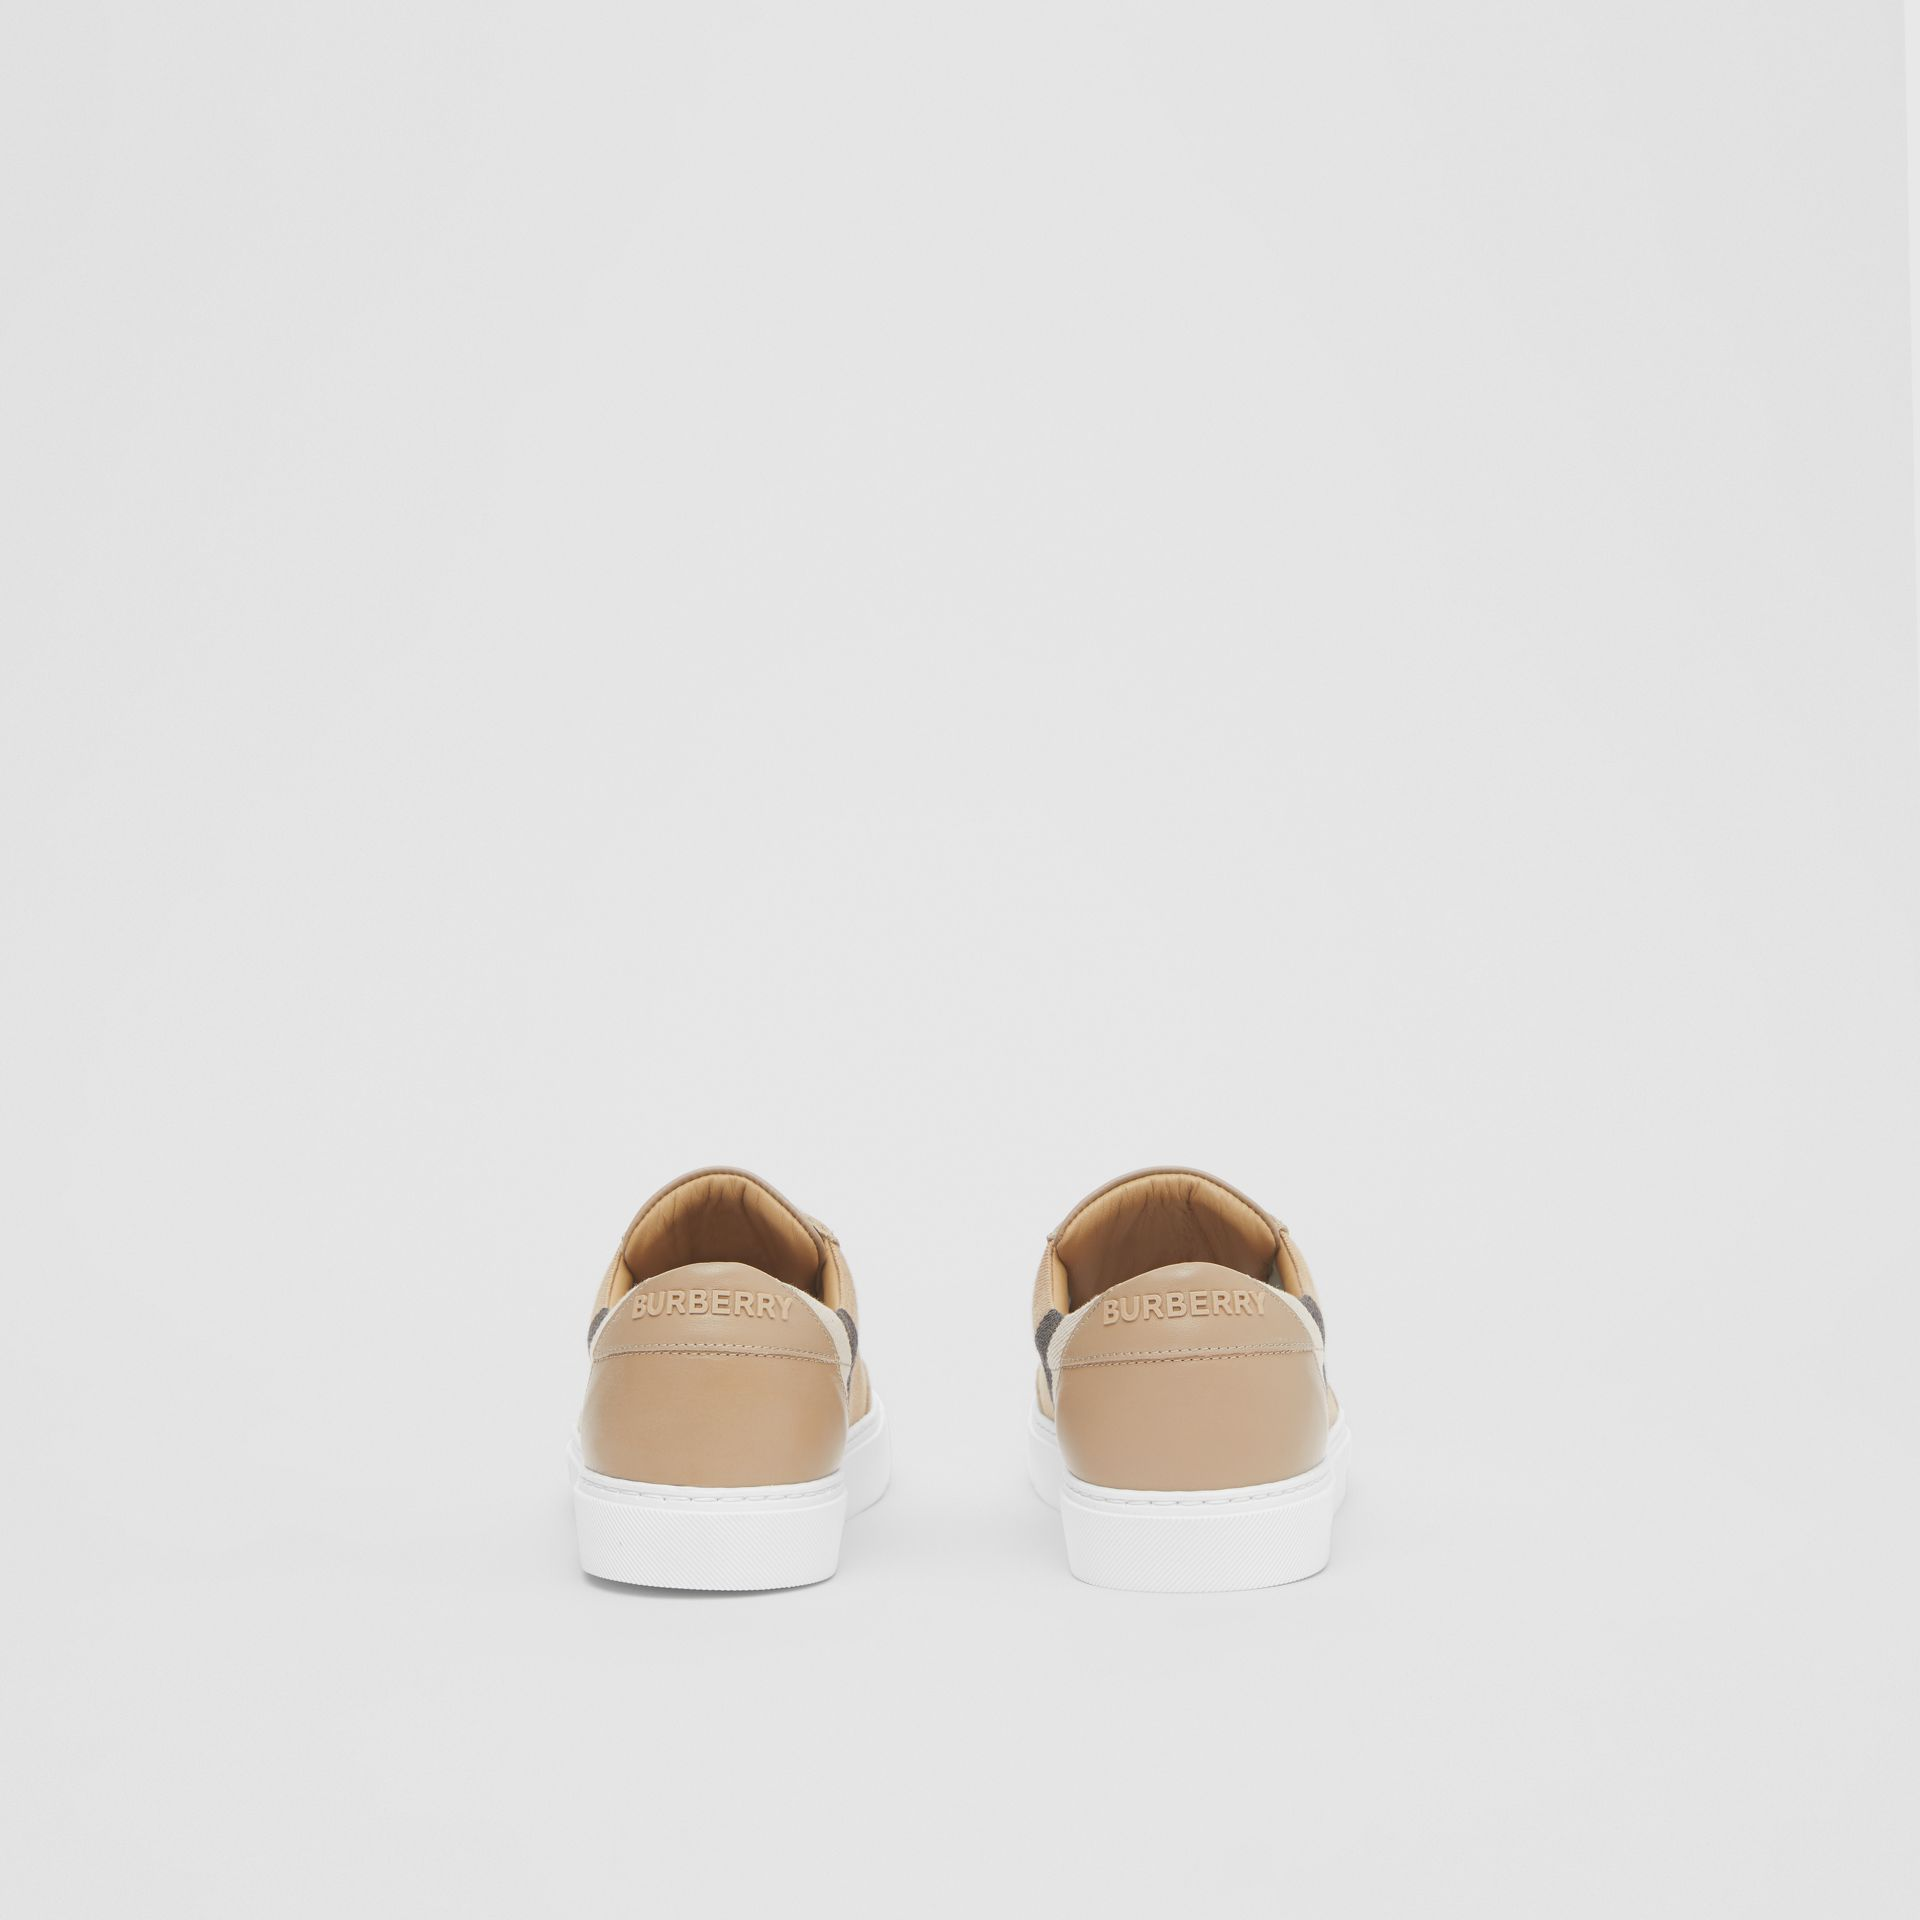 House Check and Leather Sneakers in Tan - Women | Burberry United Kingdom - gallery image 4